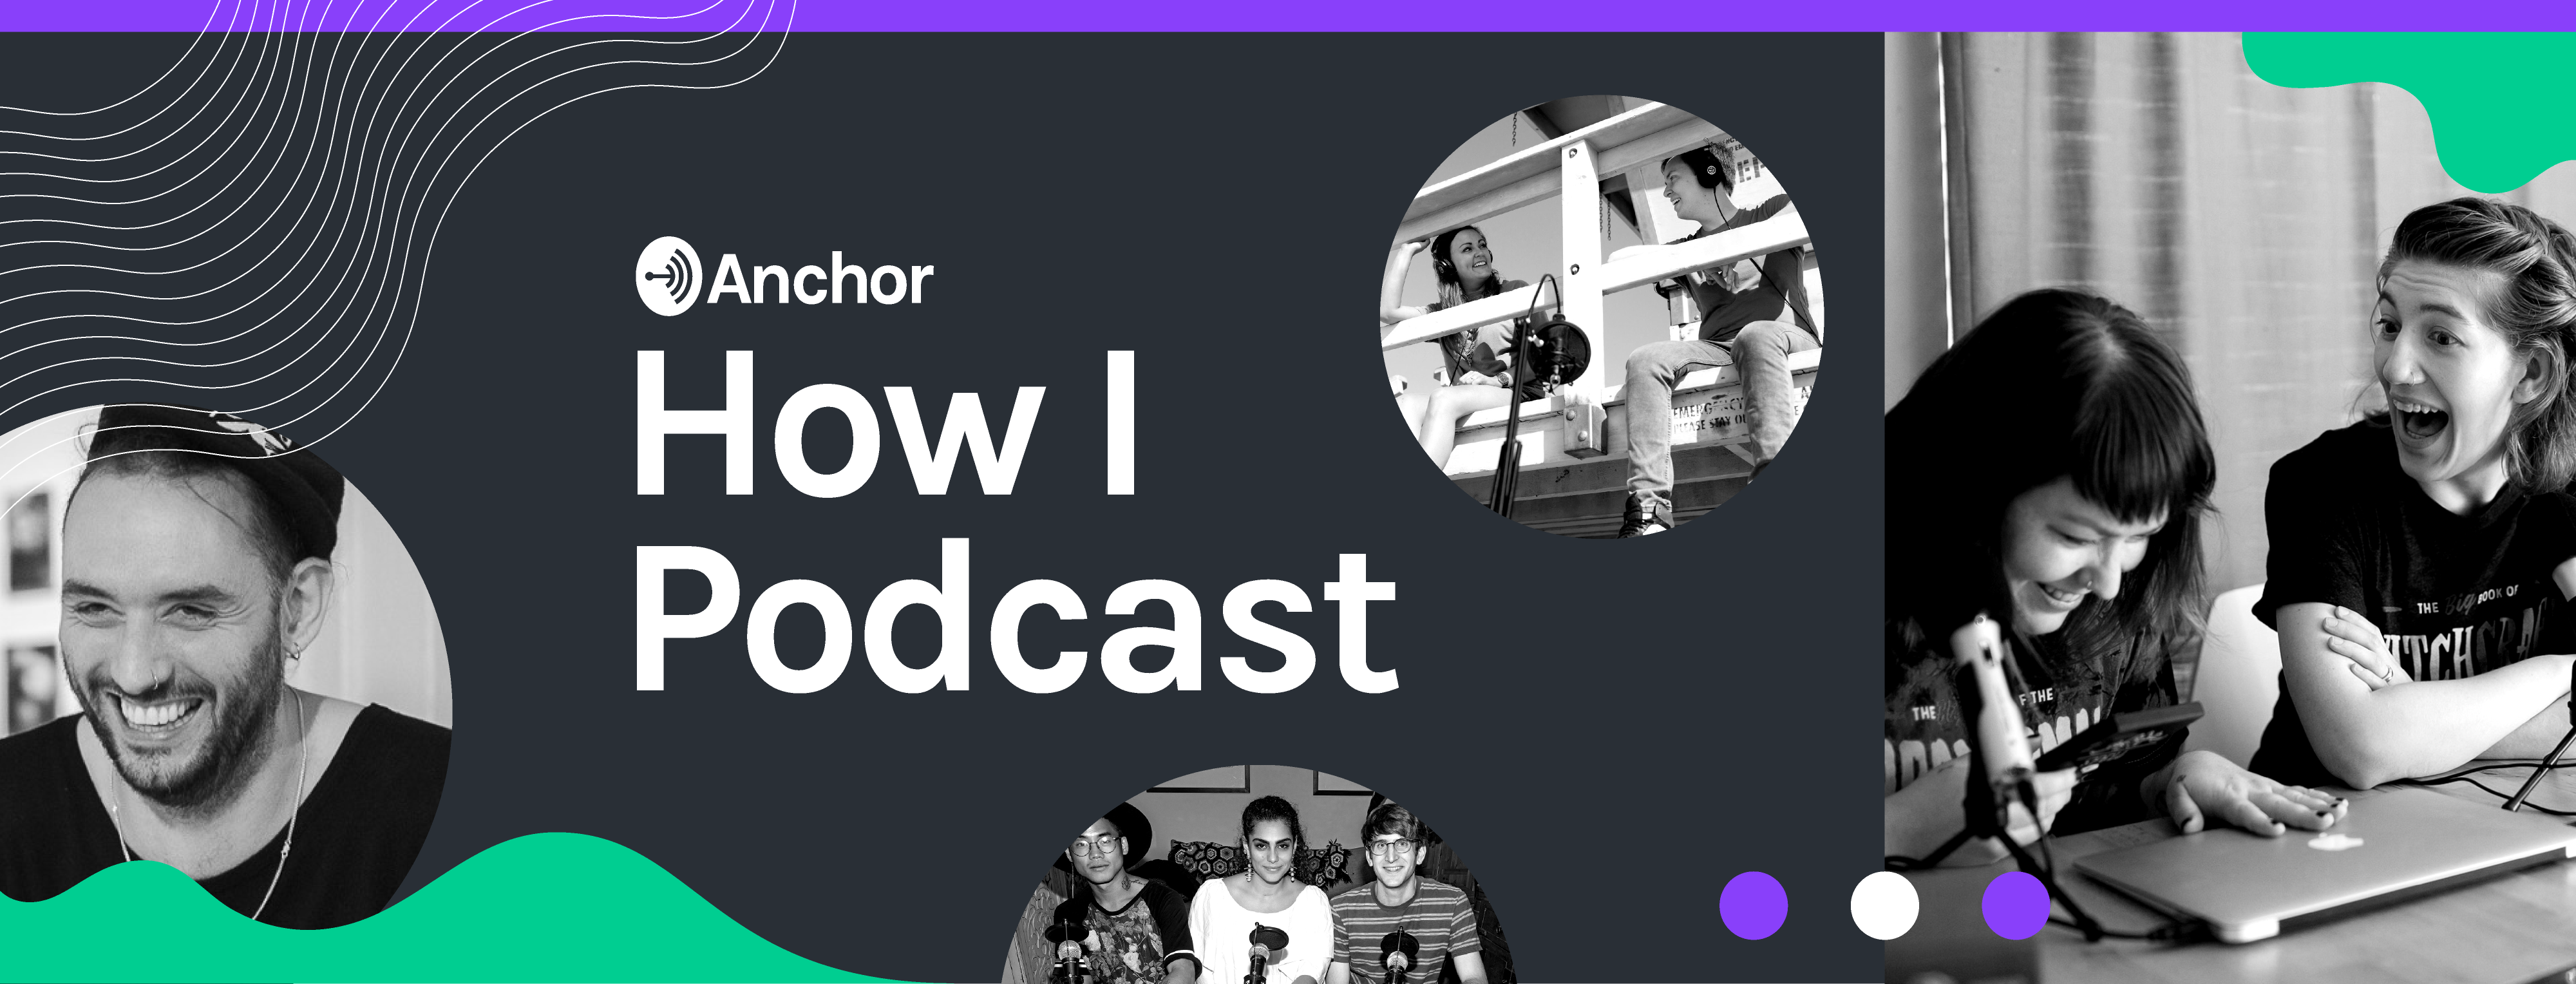 Want to Start a Podcast? Hear How From Anchor Podcasters — Spotify